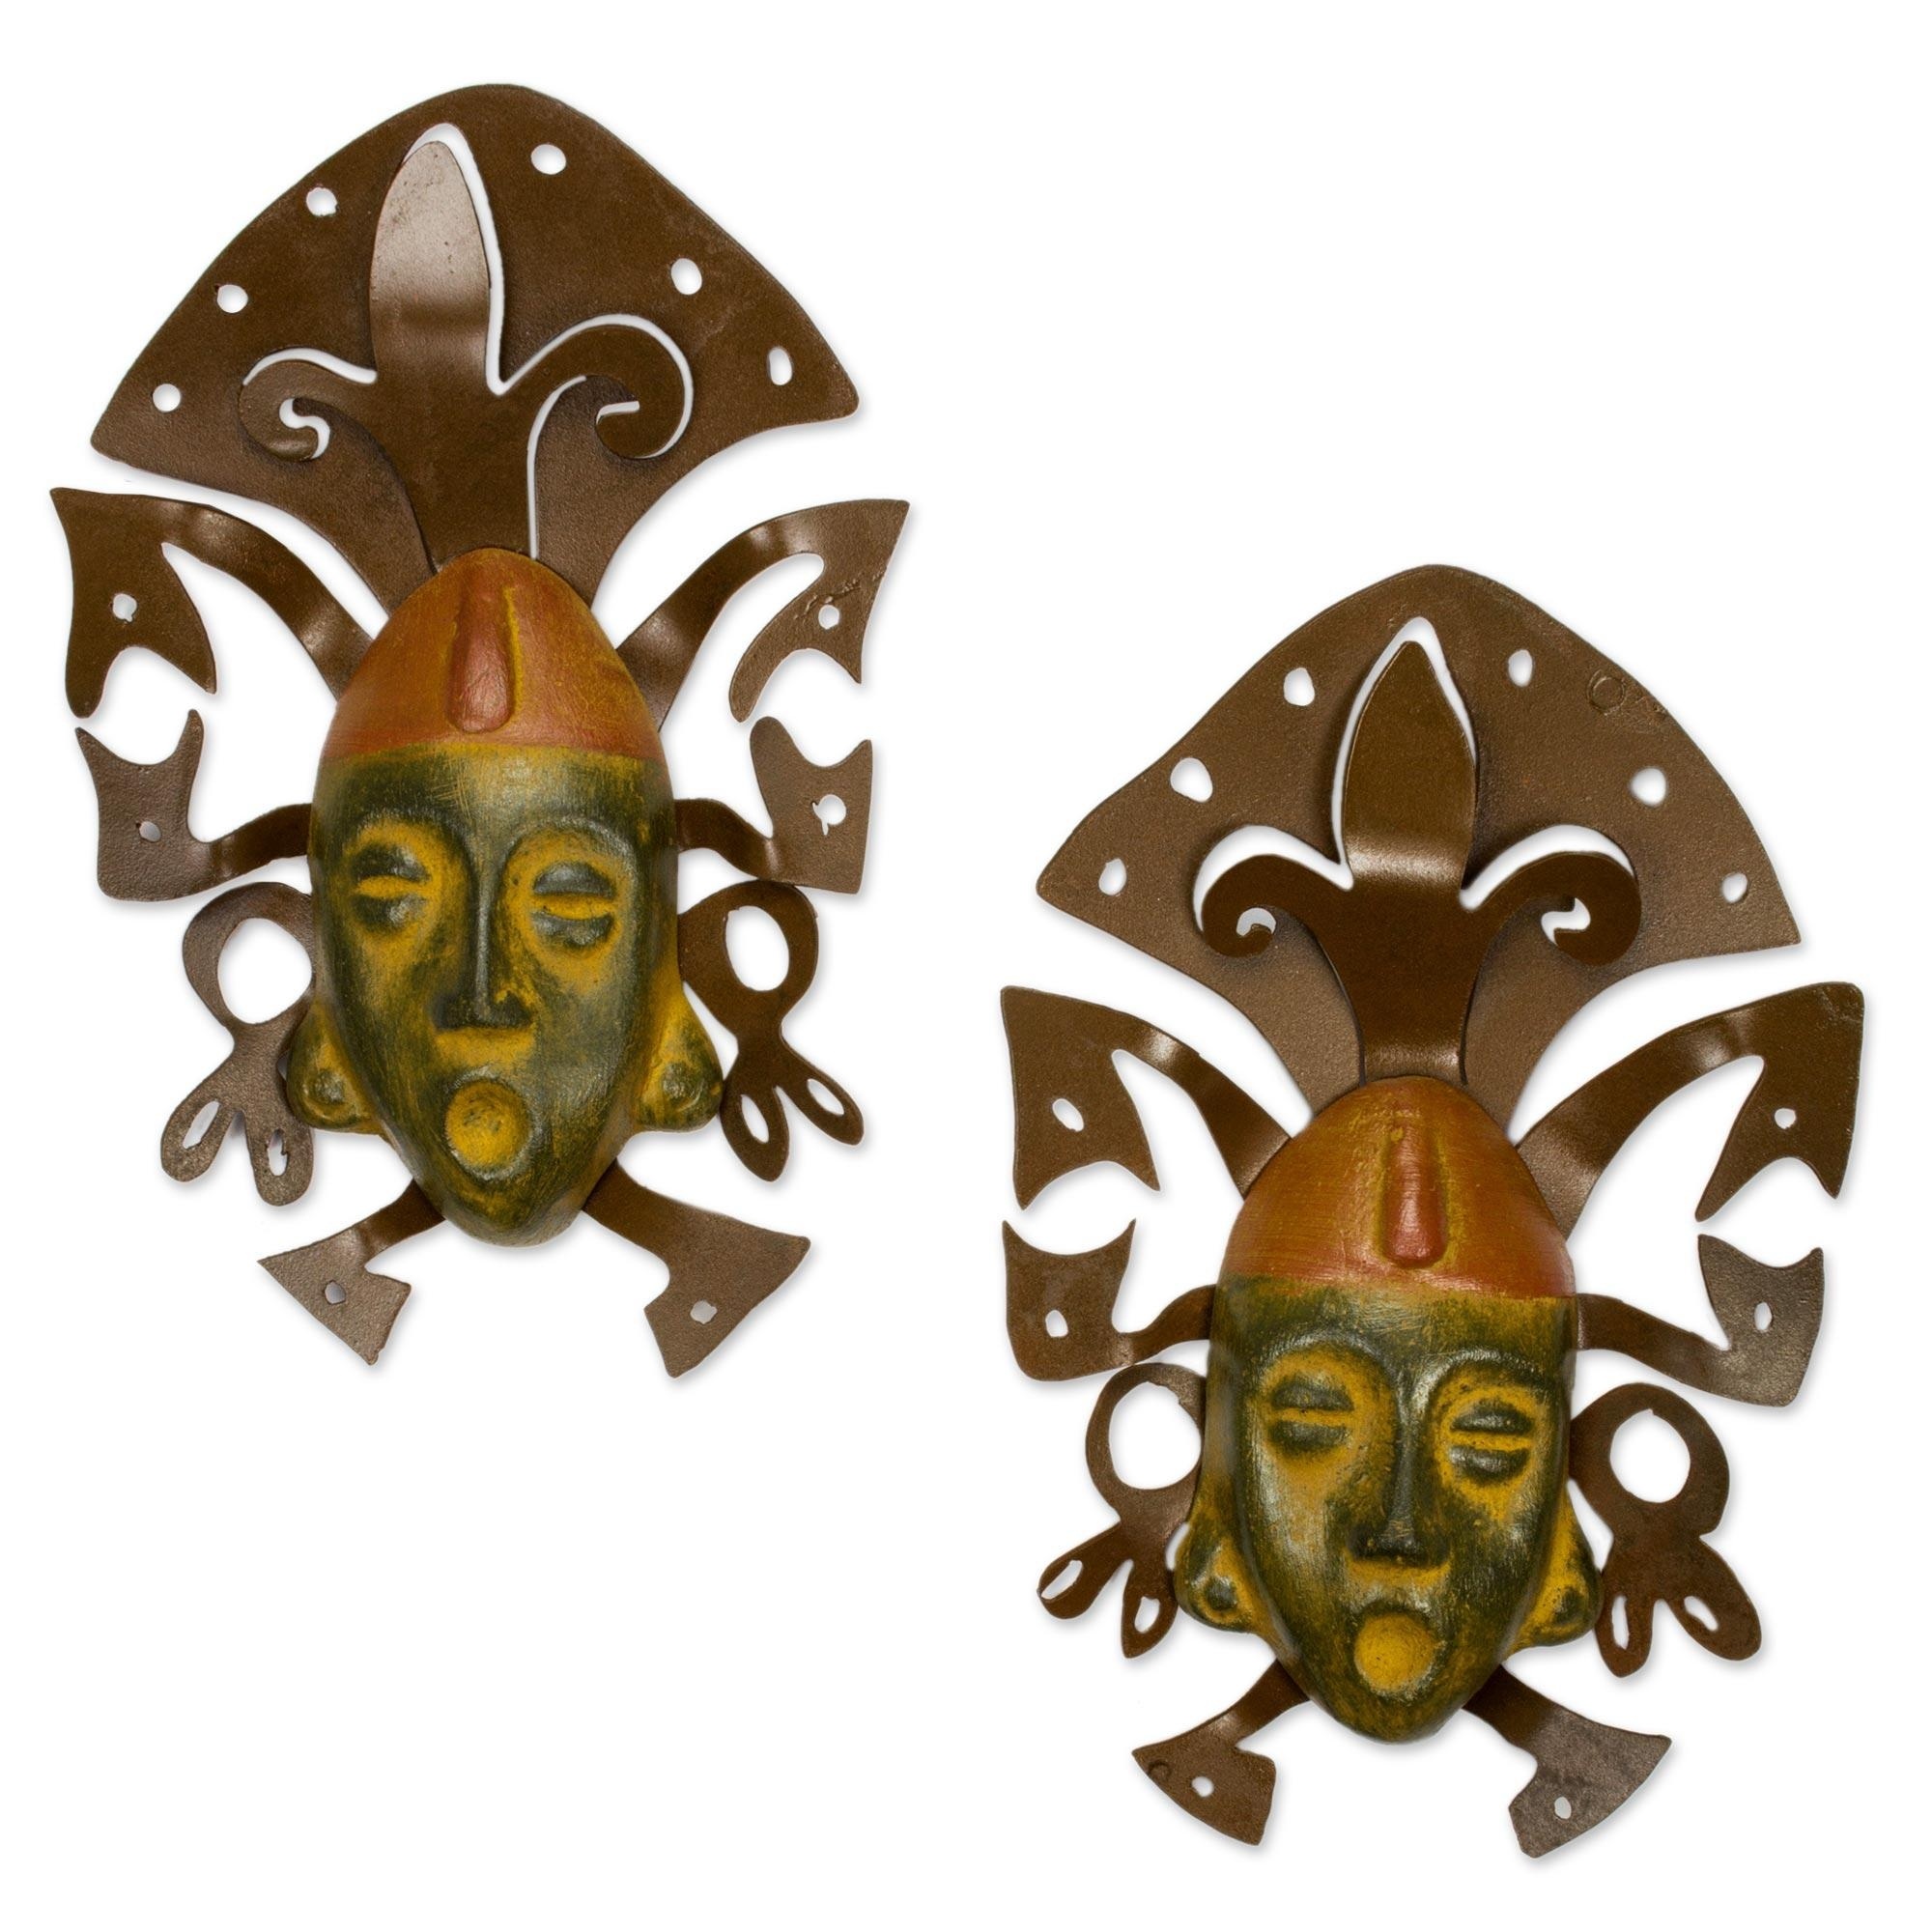 Wall Art Iron And Ceramic Mask Set Handmade Mexico – Maya Masks Throughout Mexican Ceramic Wall Art (Image 10 of 20)